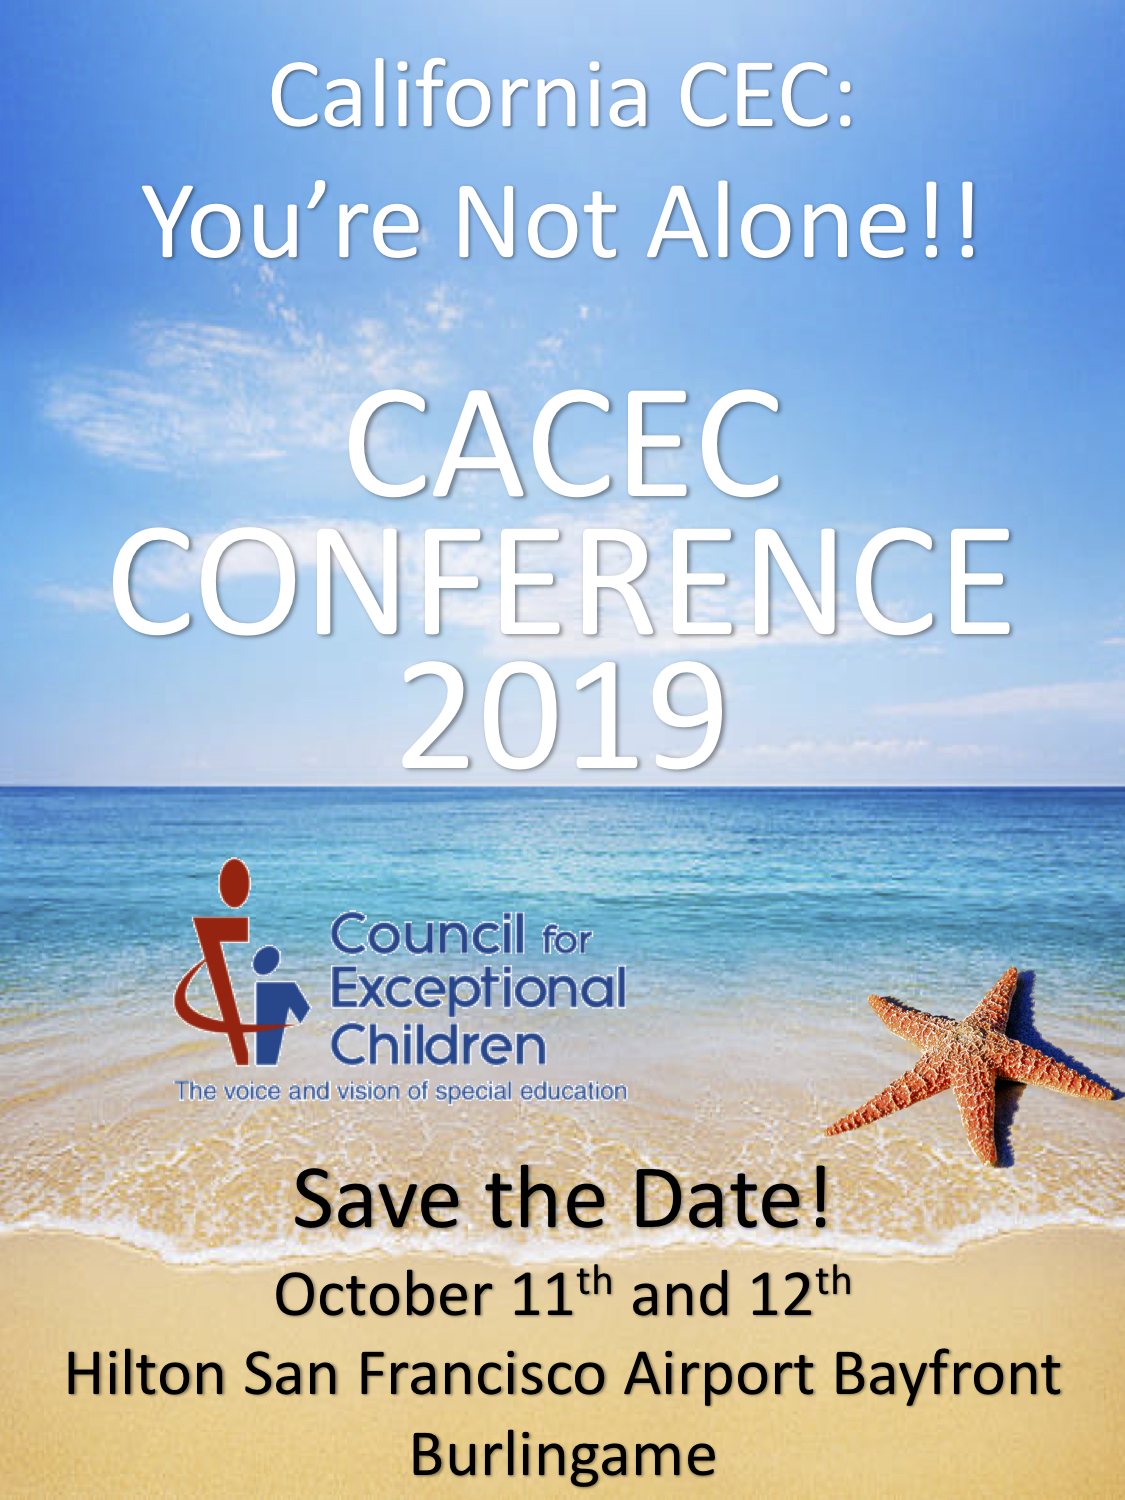 California CEC – The Voice and Vision of Special Education